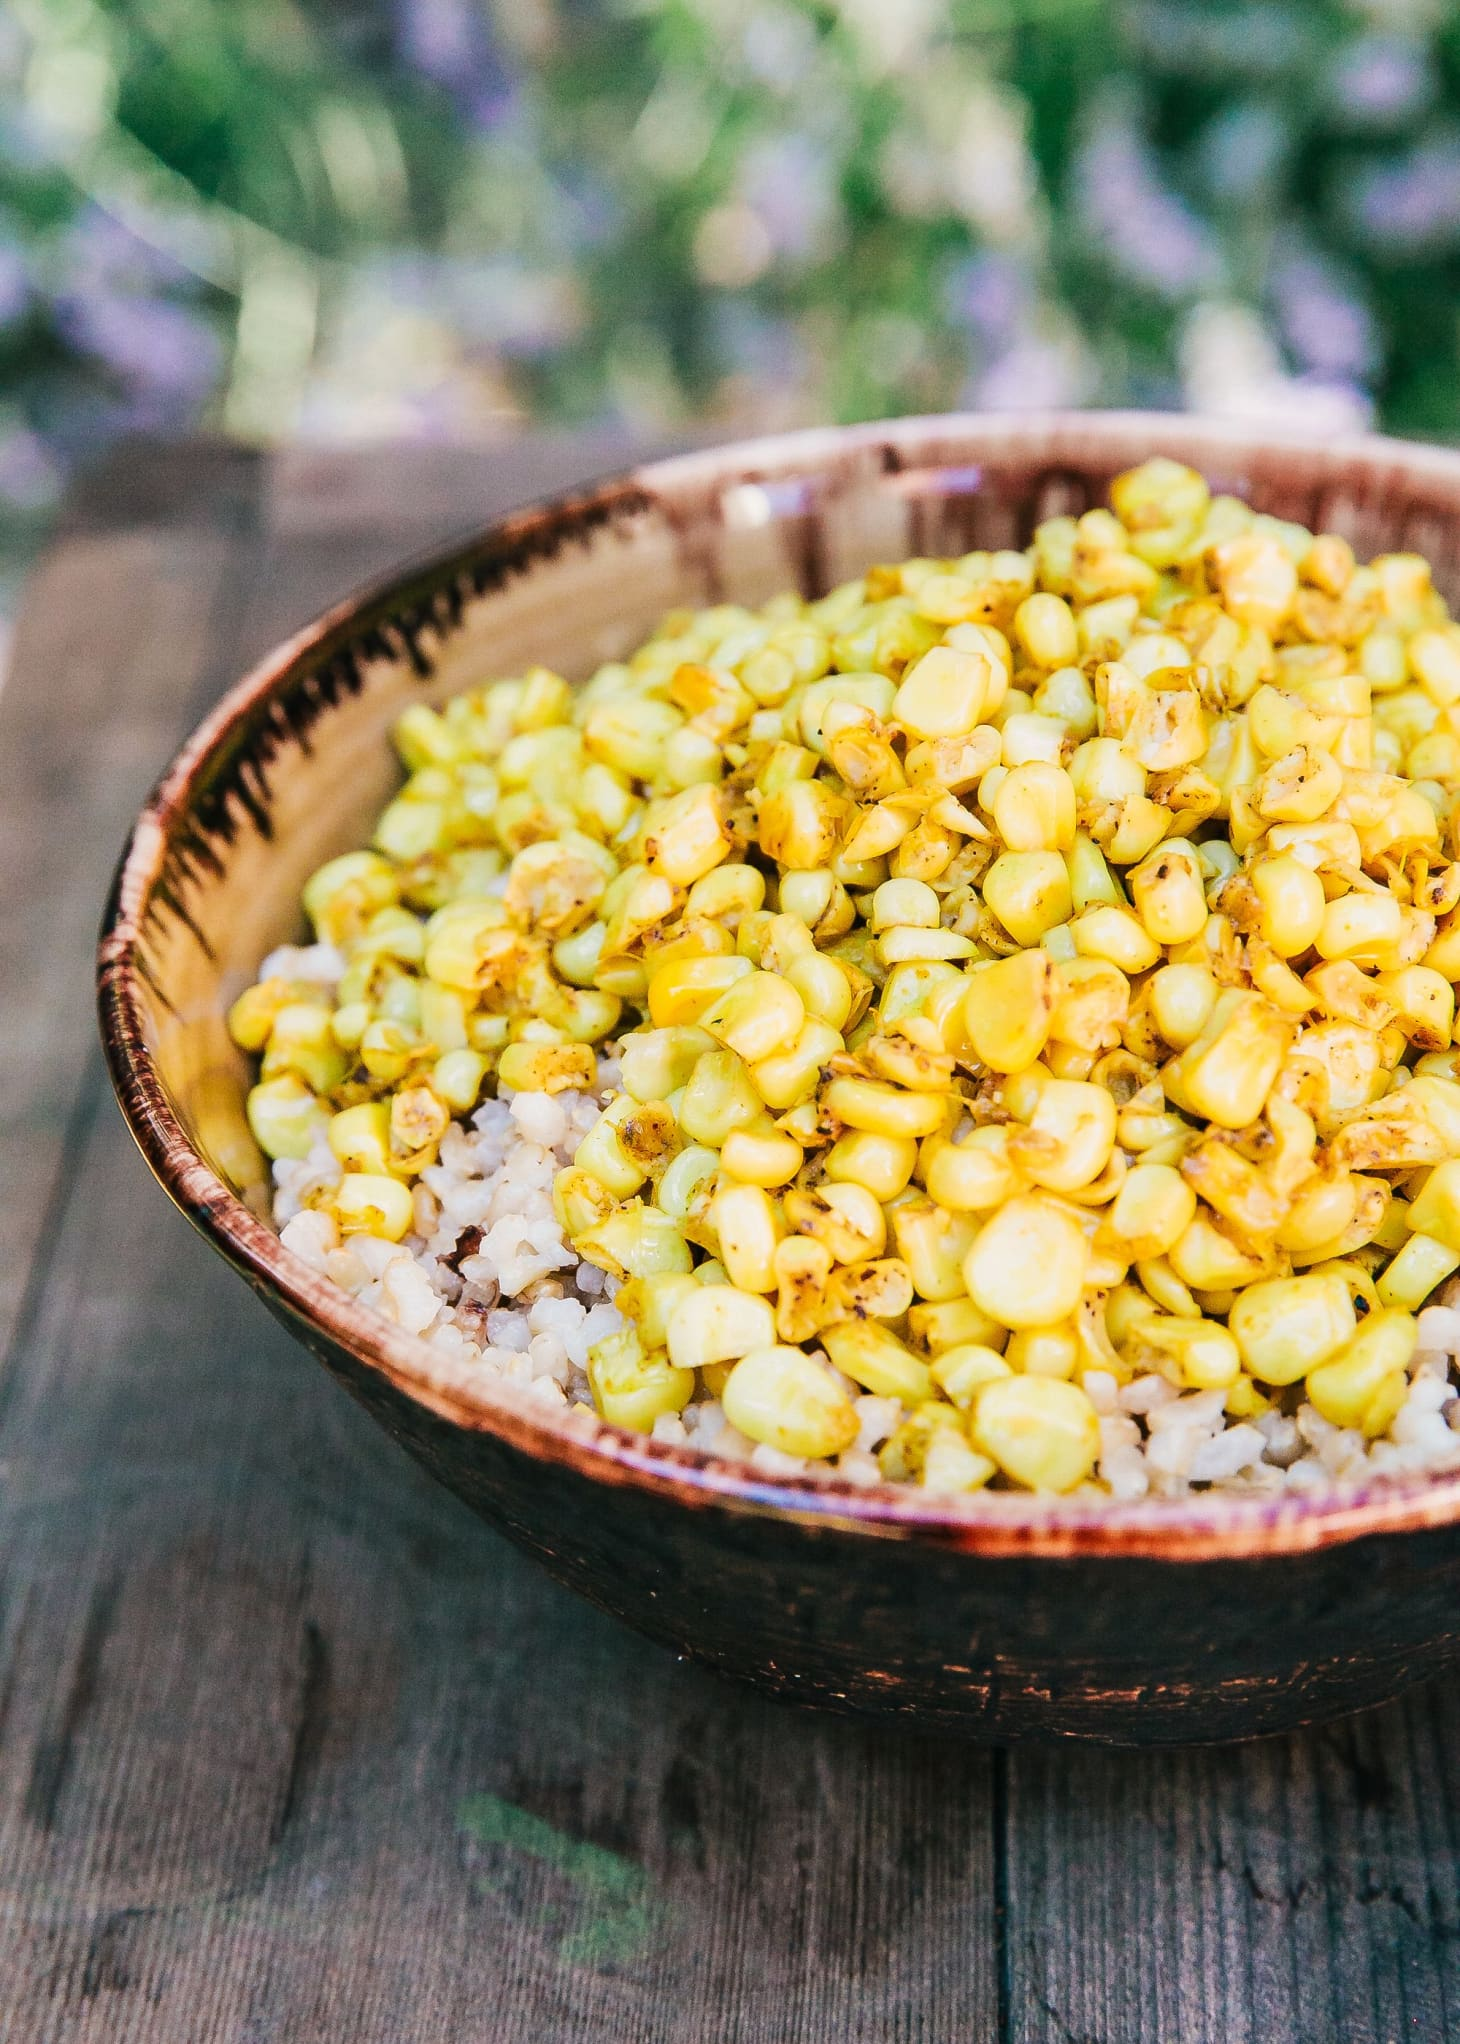 Corn Side Dishes - Easy Corn Recipes | Kitchn